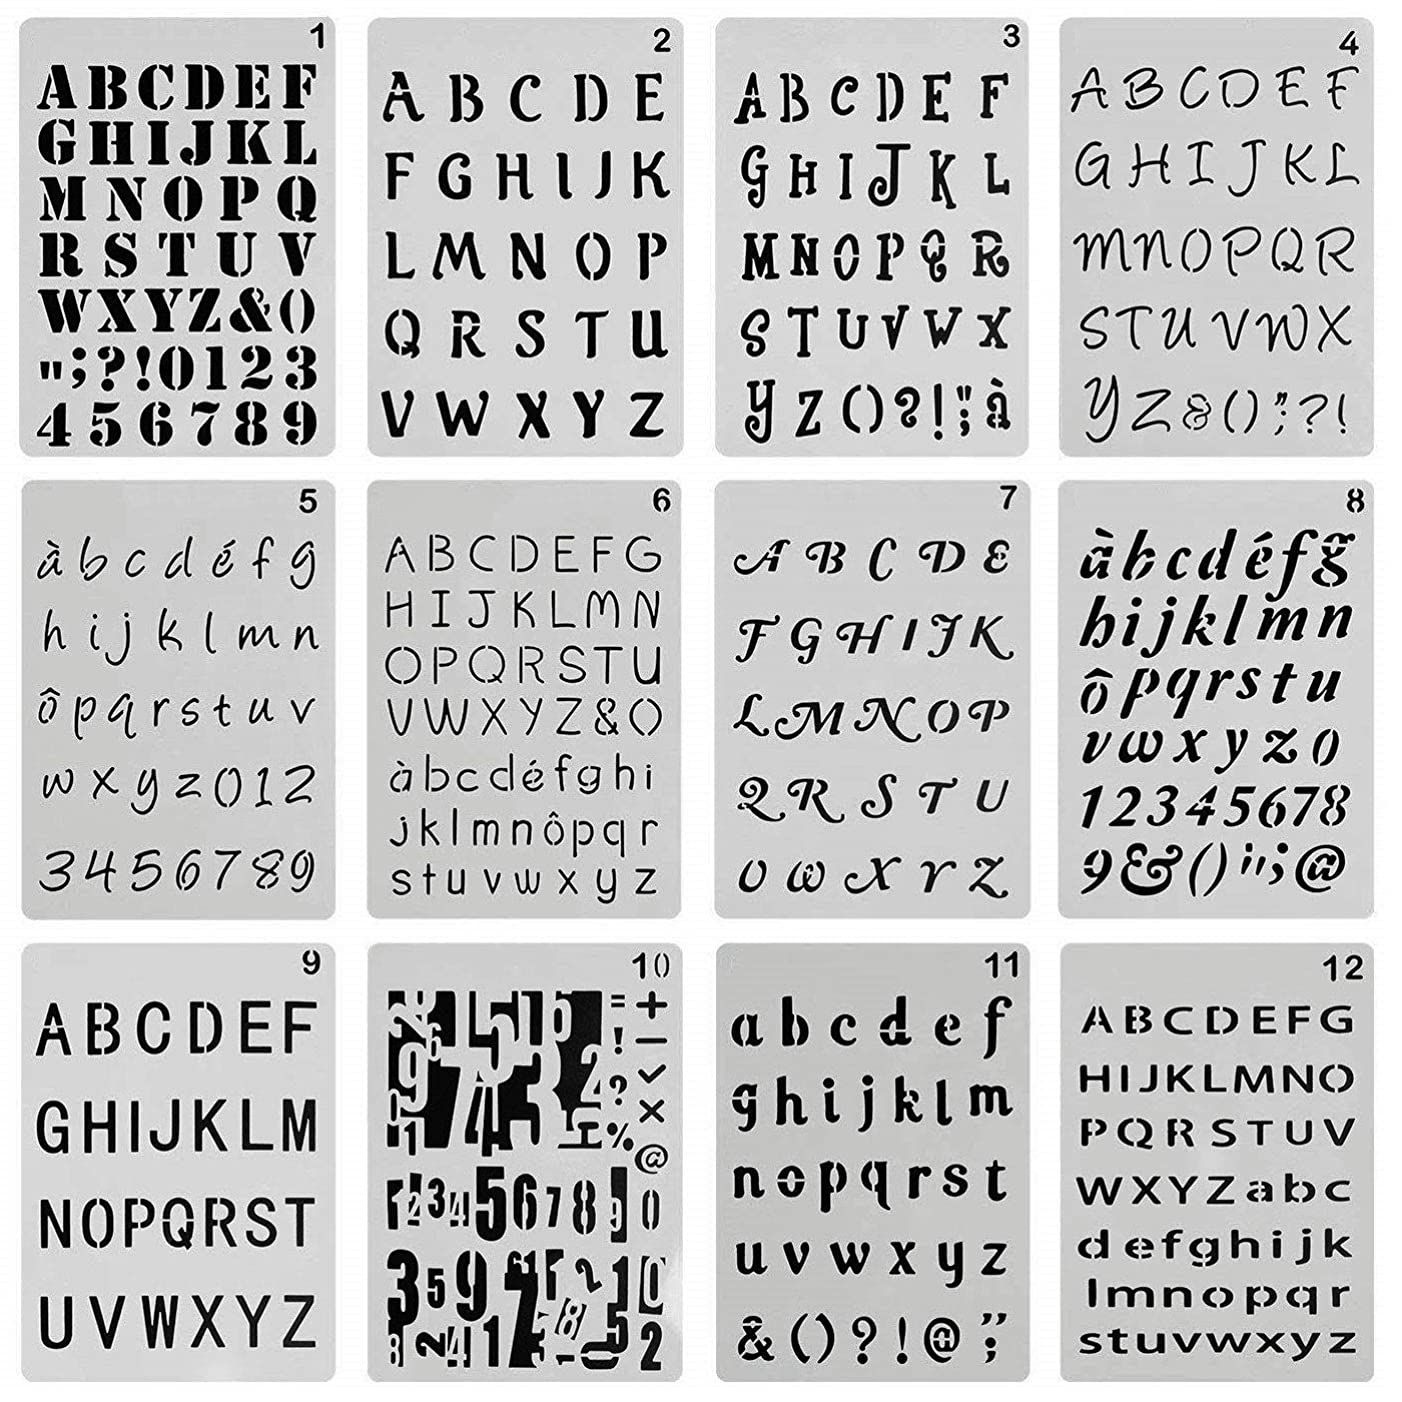 ONEST 12 Pack Letter and Number Stencils Alphabet Stencil Journal/Notebook/Diary/Scrapbook DIY Drawing Template Stencil, 4x7 Inch